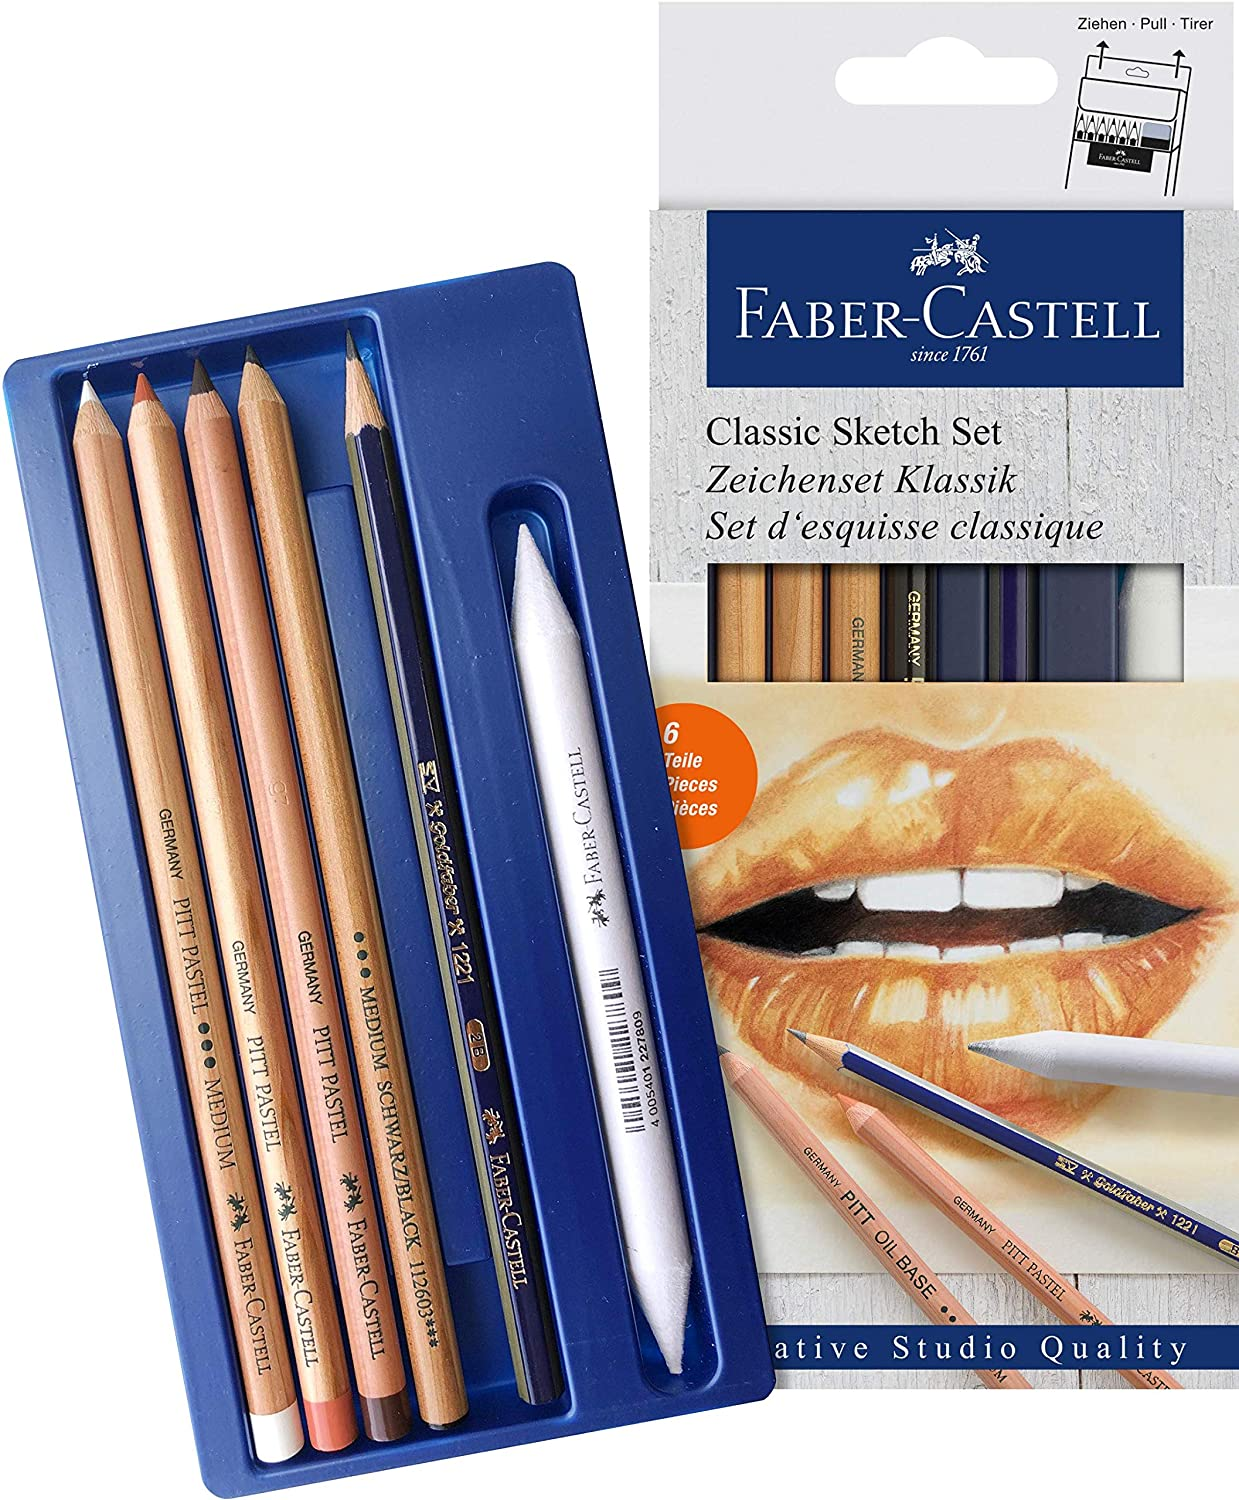 FABER-CASTELL CLASSIC SKETCH SET (BLUE)